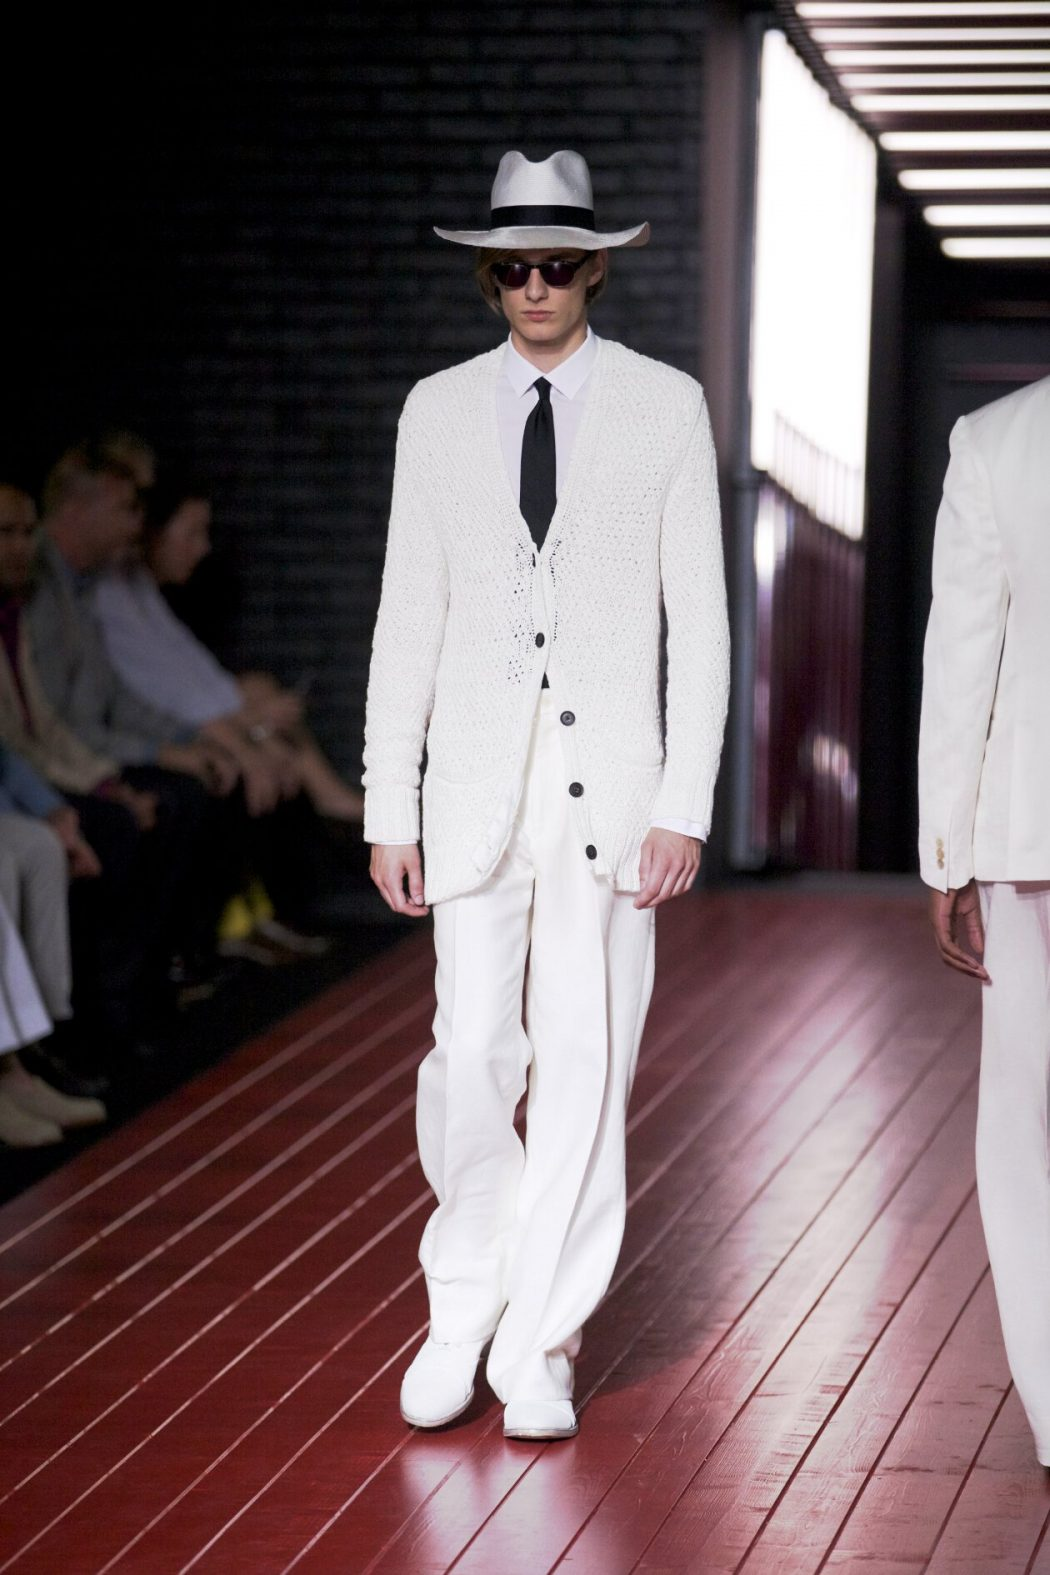 large-brimmed-straw-hat-Spring-2013-Fashion-Trends-John-Varvatos What Are The Latest Fashion Trends of Men's Hats?